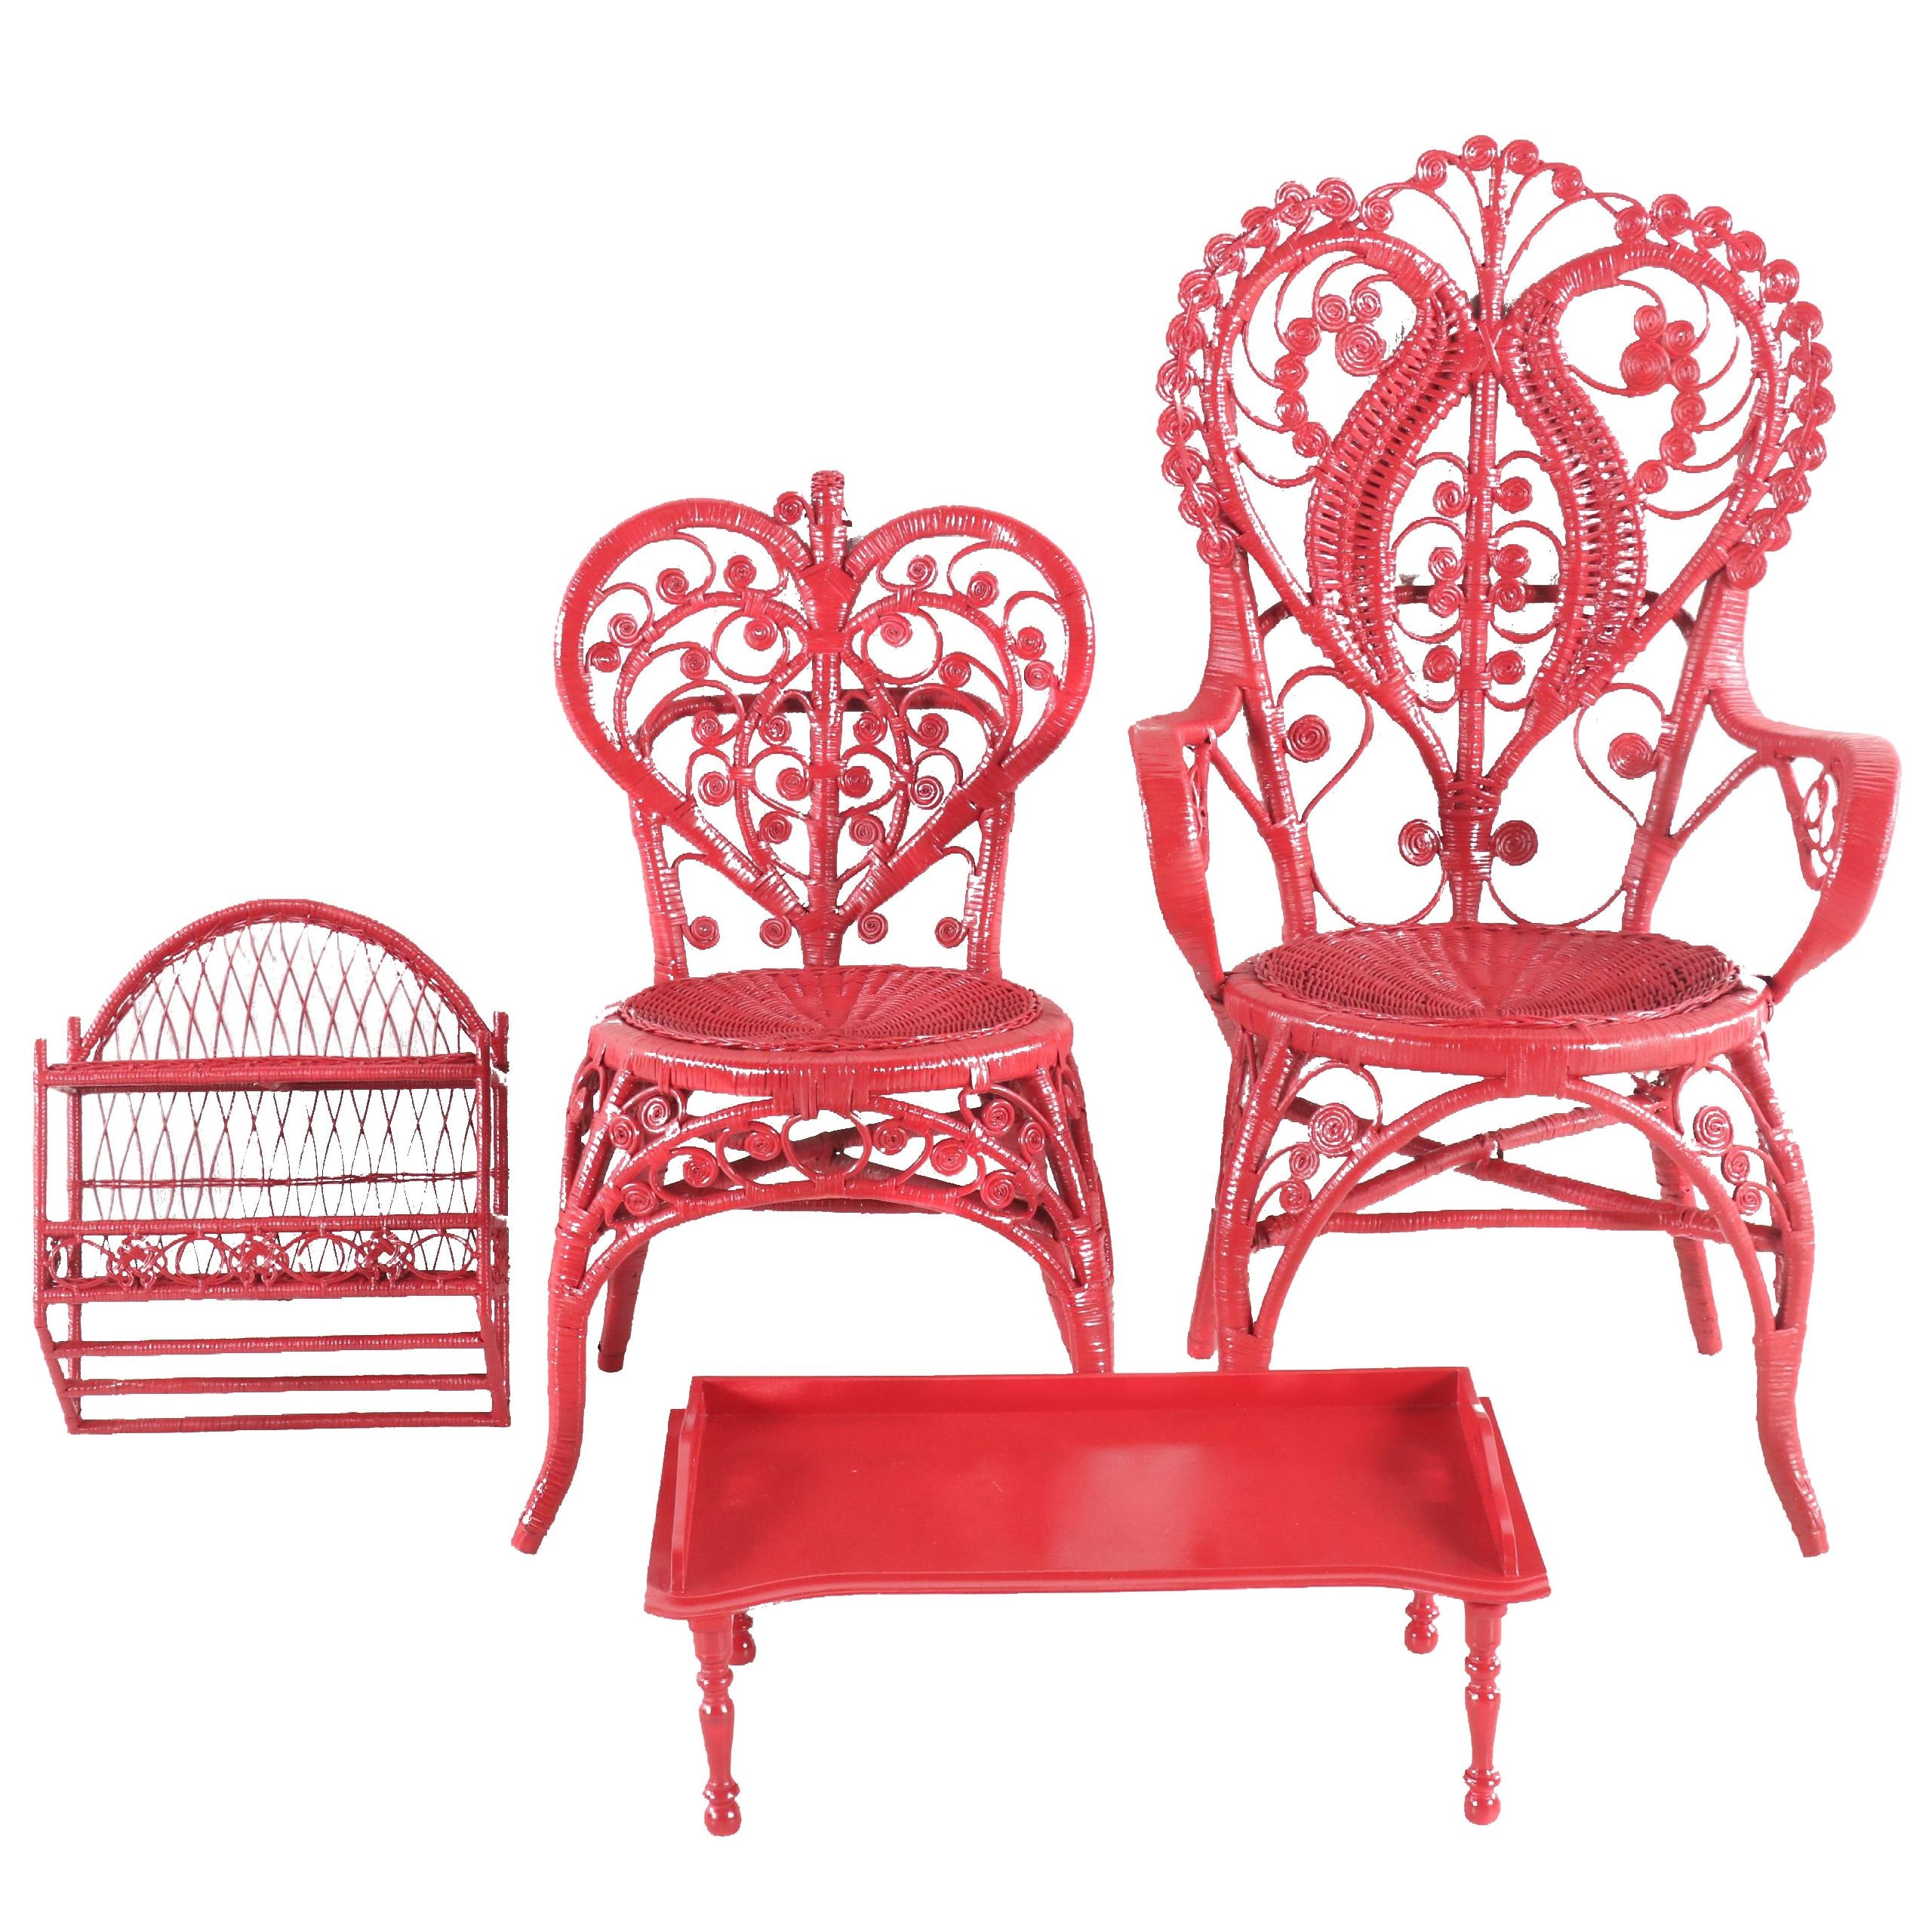 Red-Painted Wicker Chairs, Shelf, and Bedside Table